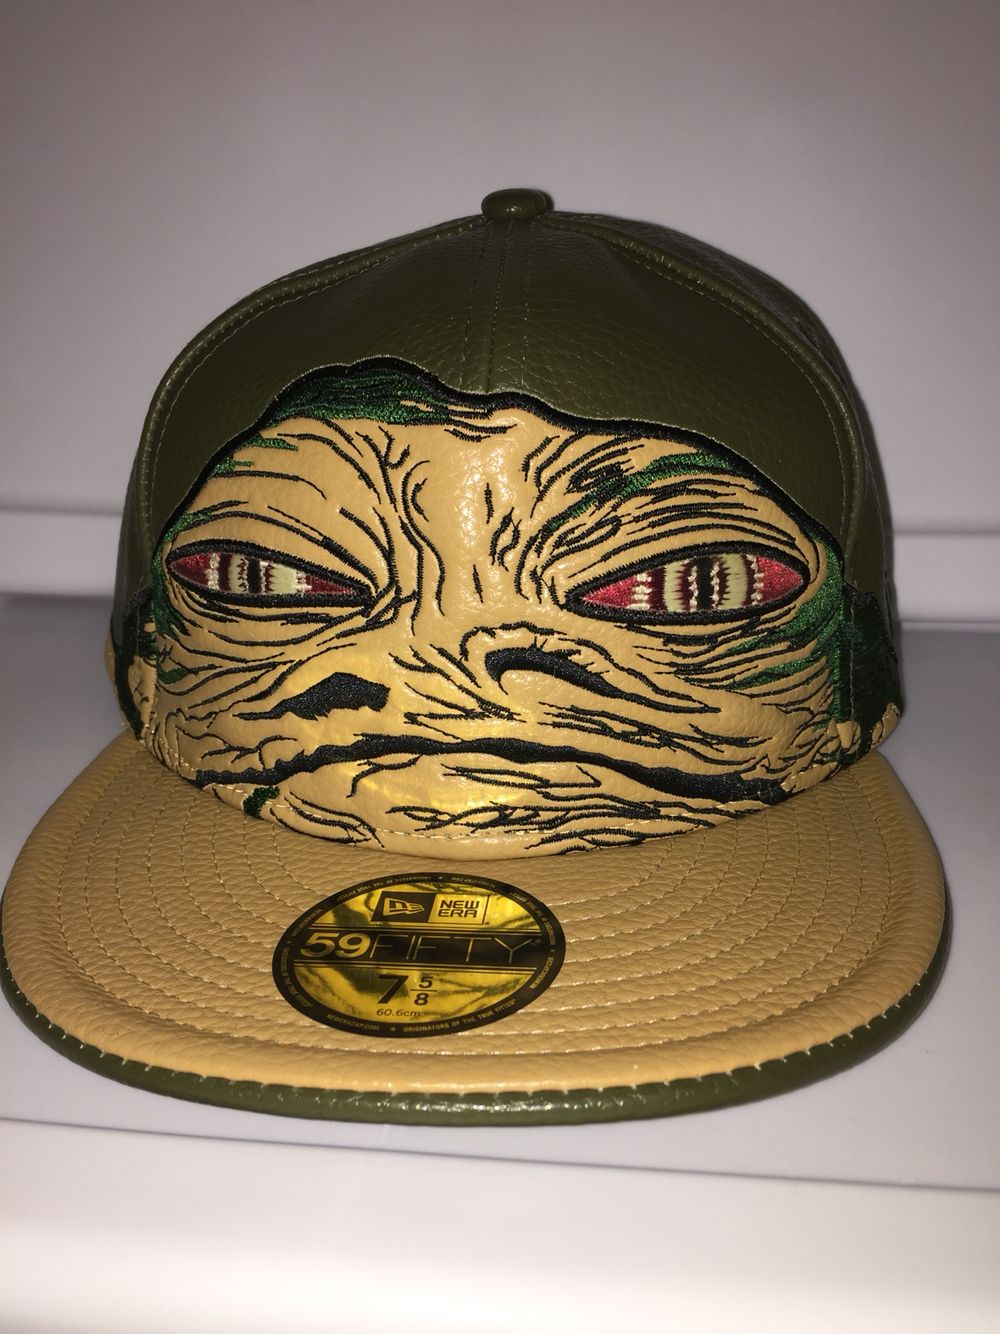 New era Star Wars fitted Jabba the Hutt Hatland exclusive based on the Japanese version